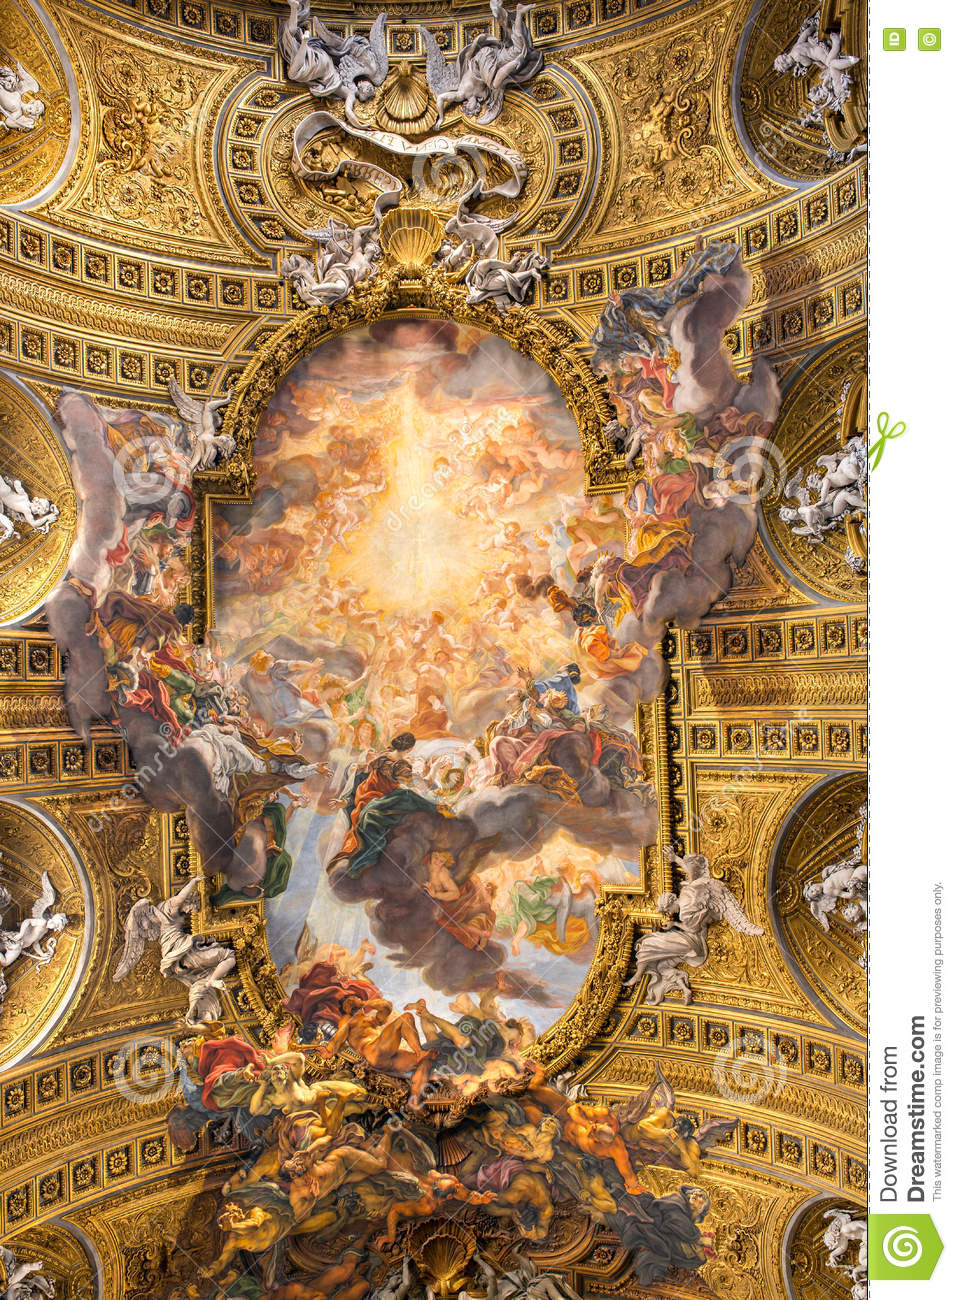 Download Chorus Of Basilica Il Gesu, Rome, Italy. Ceiling View Stock Photo - Image of loyola, church: 72377852